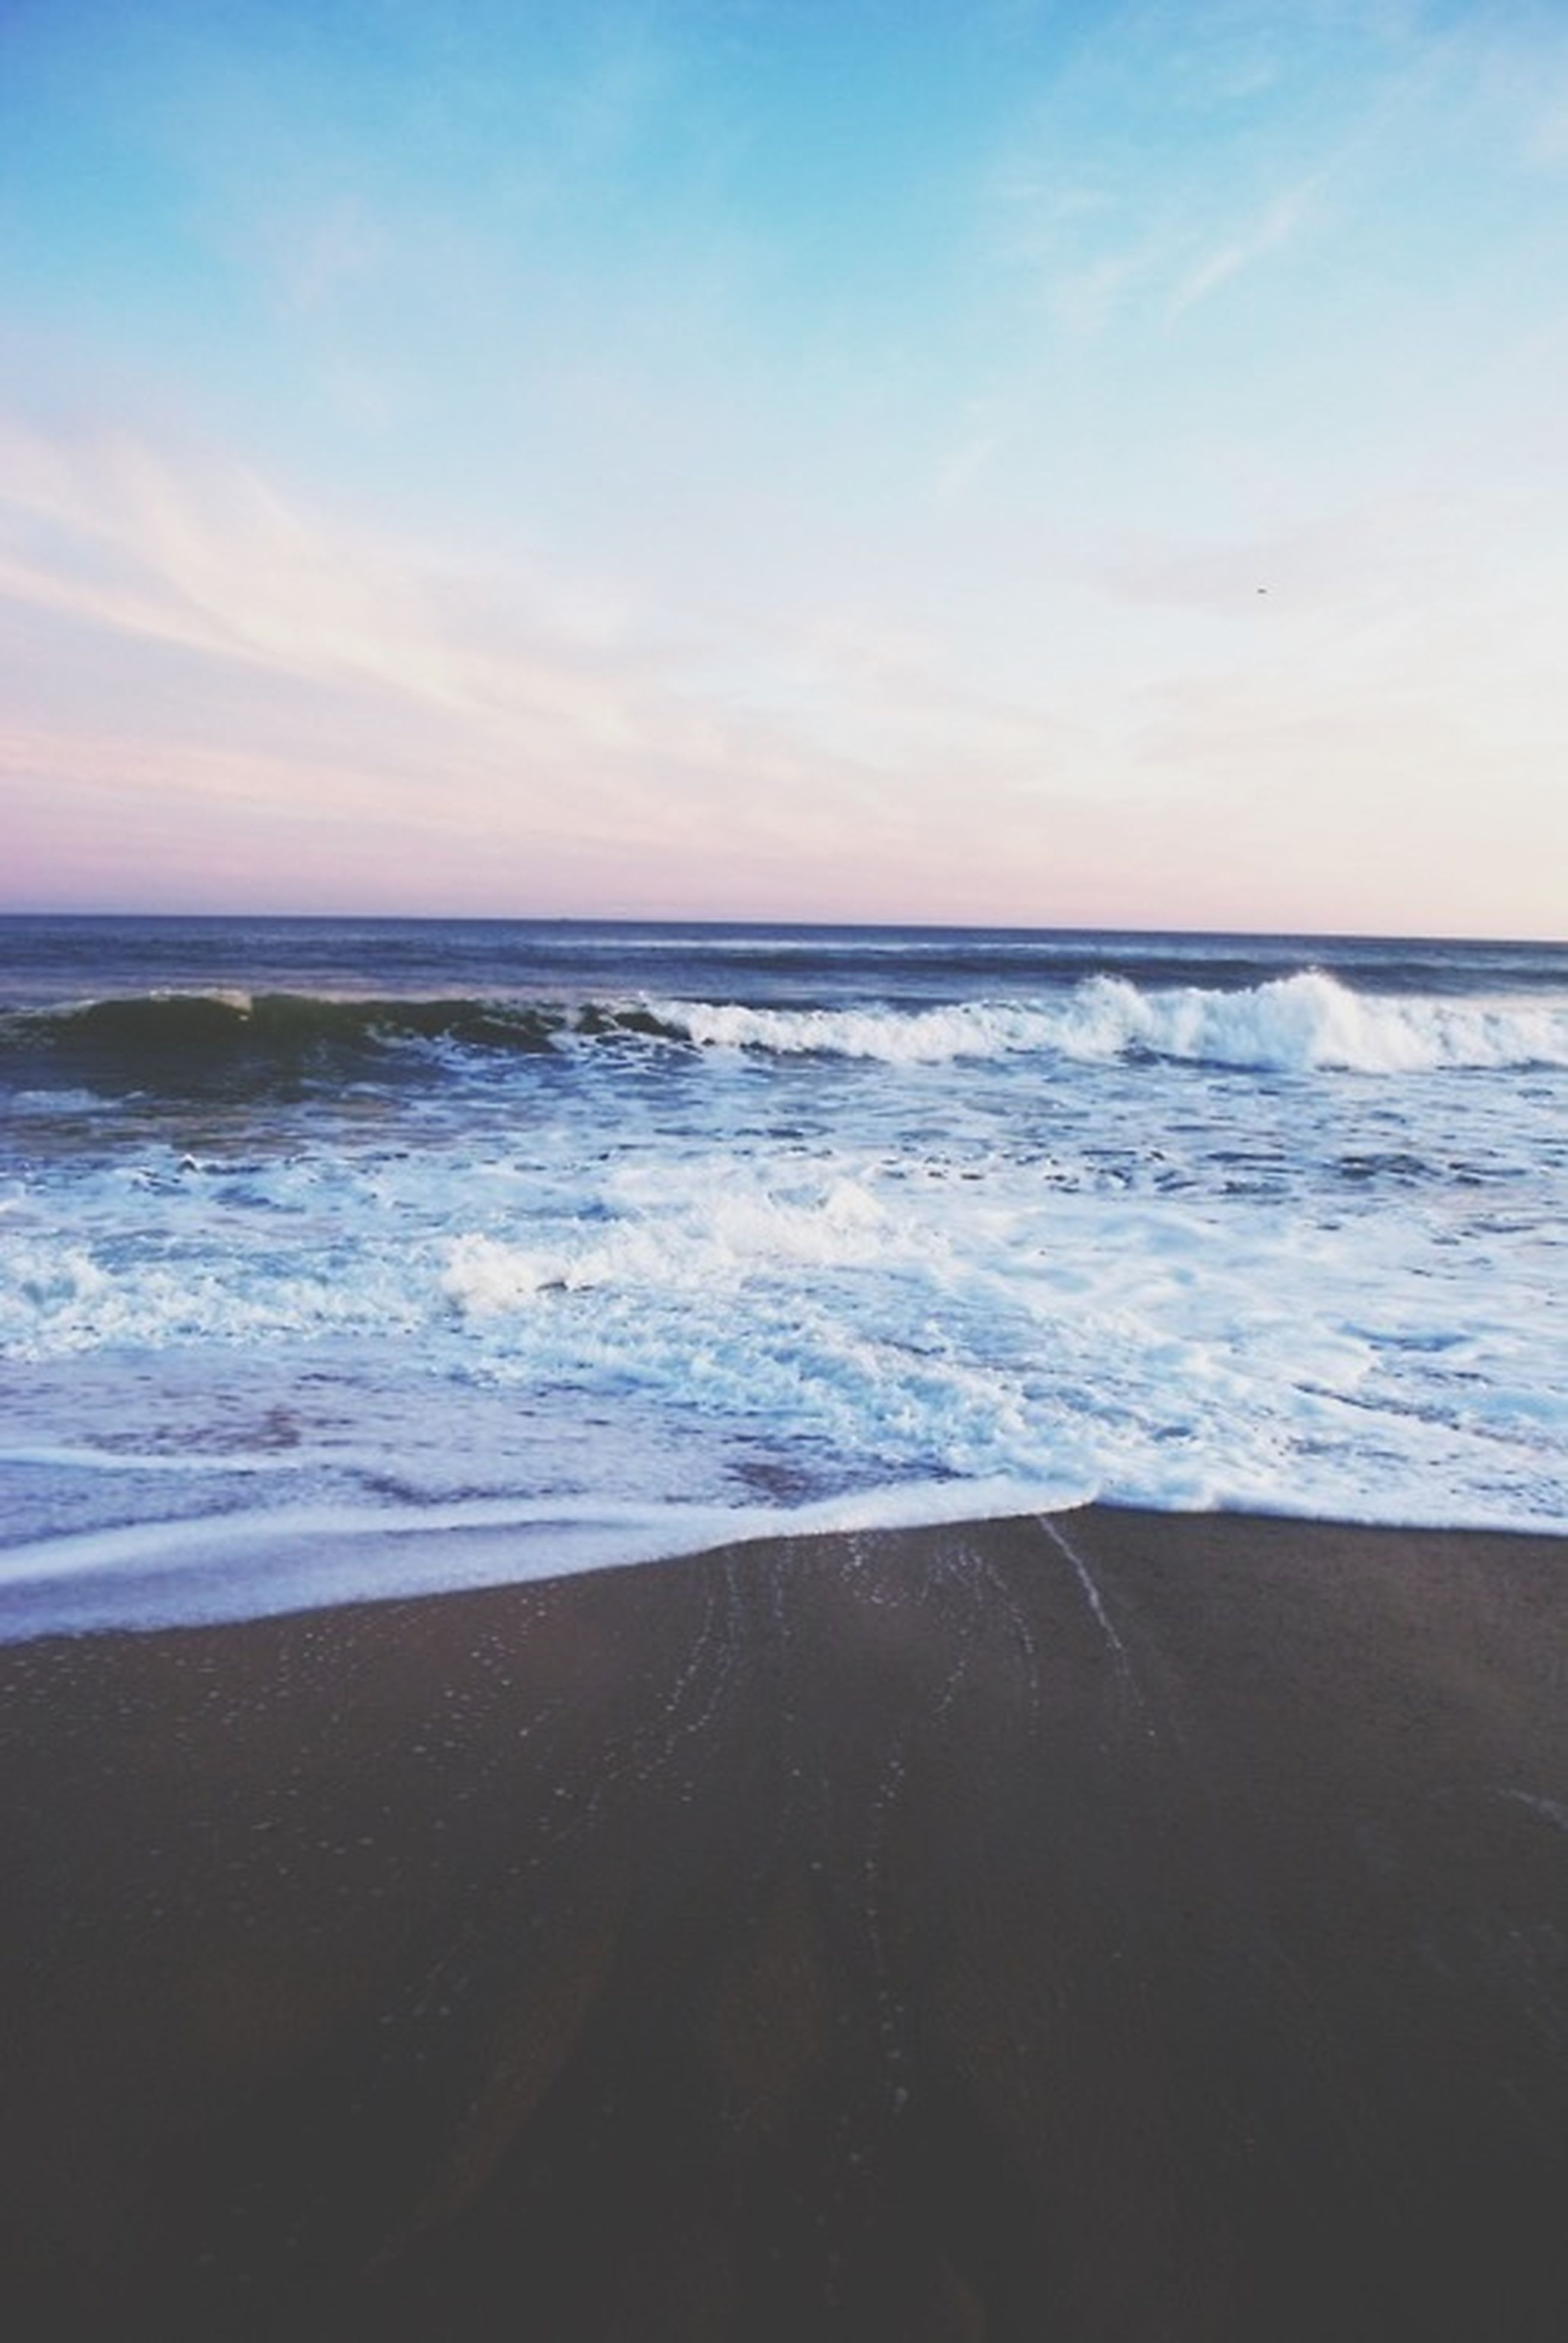 sea, horizon over water, water, beach, wave, scenics, shore, beauty in nature, sky, tranquil scene, tranquility, surf, nature, sand, idyllic, seascape, motion, sunset, outdoors, remote